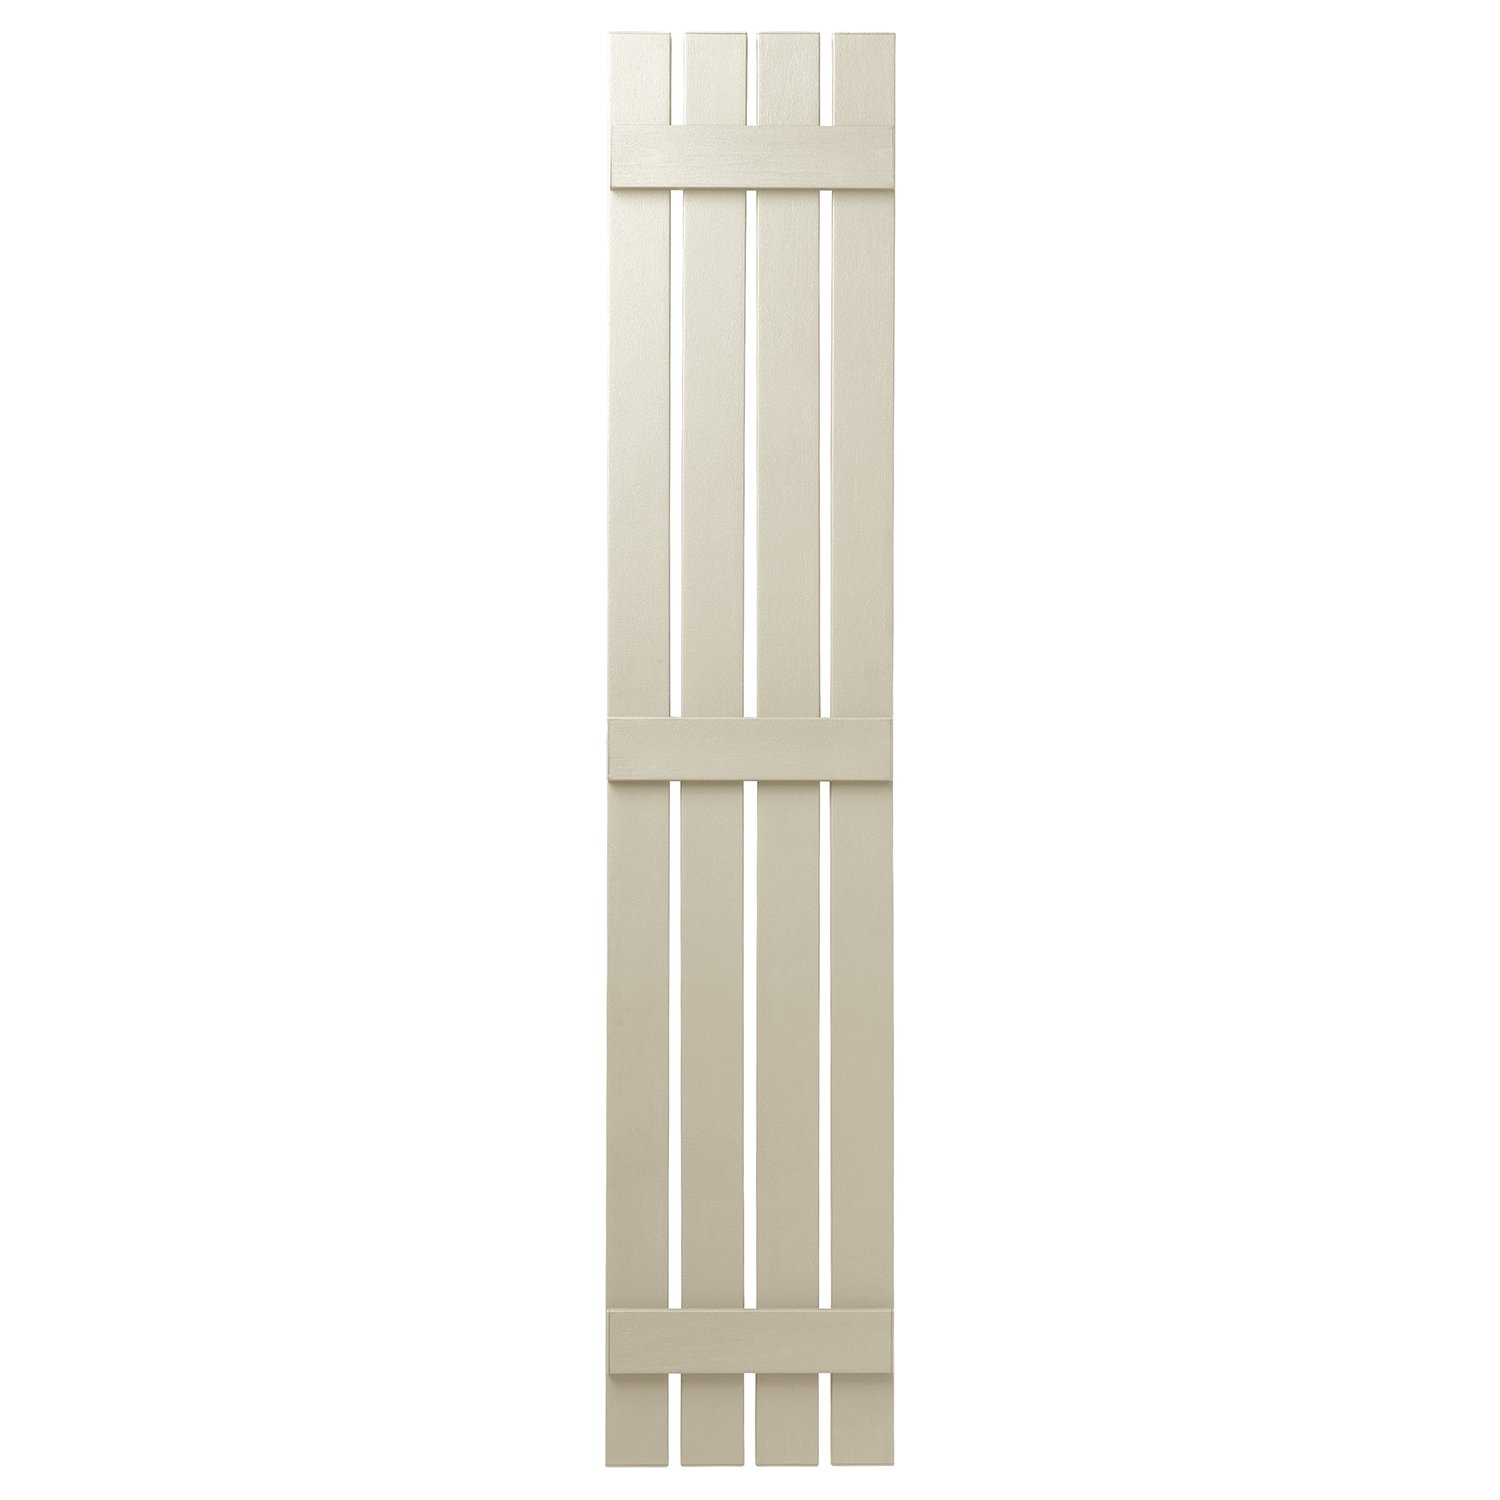 Ply Gem Shutters and Accents VIN401671 CRM 4 Open Board and Batten Shutter, Sand Dollar